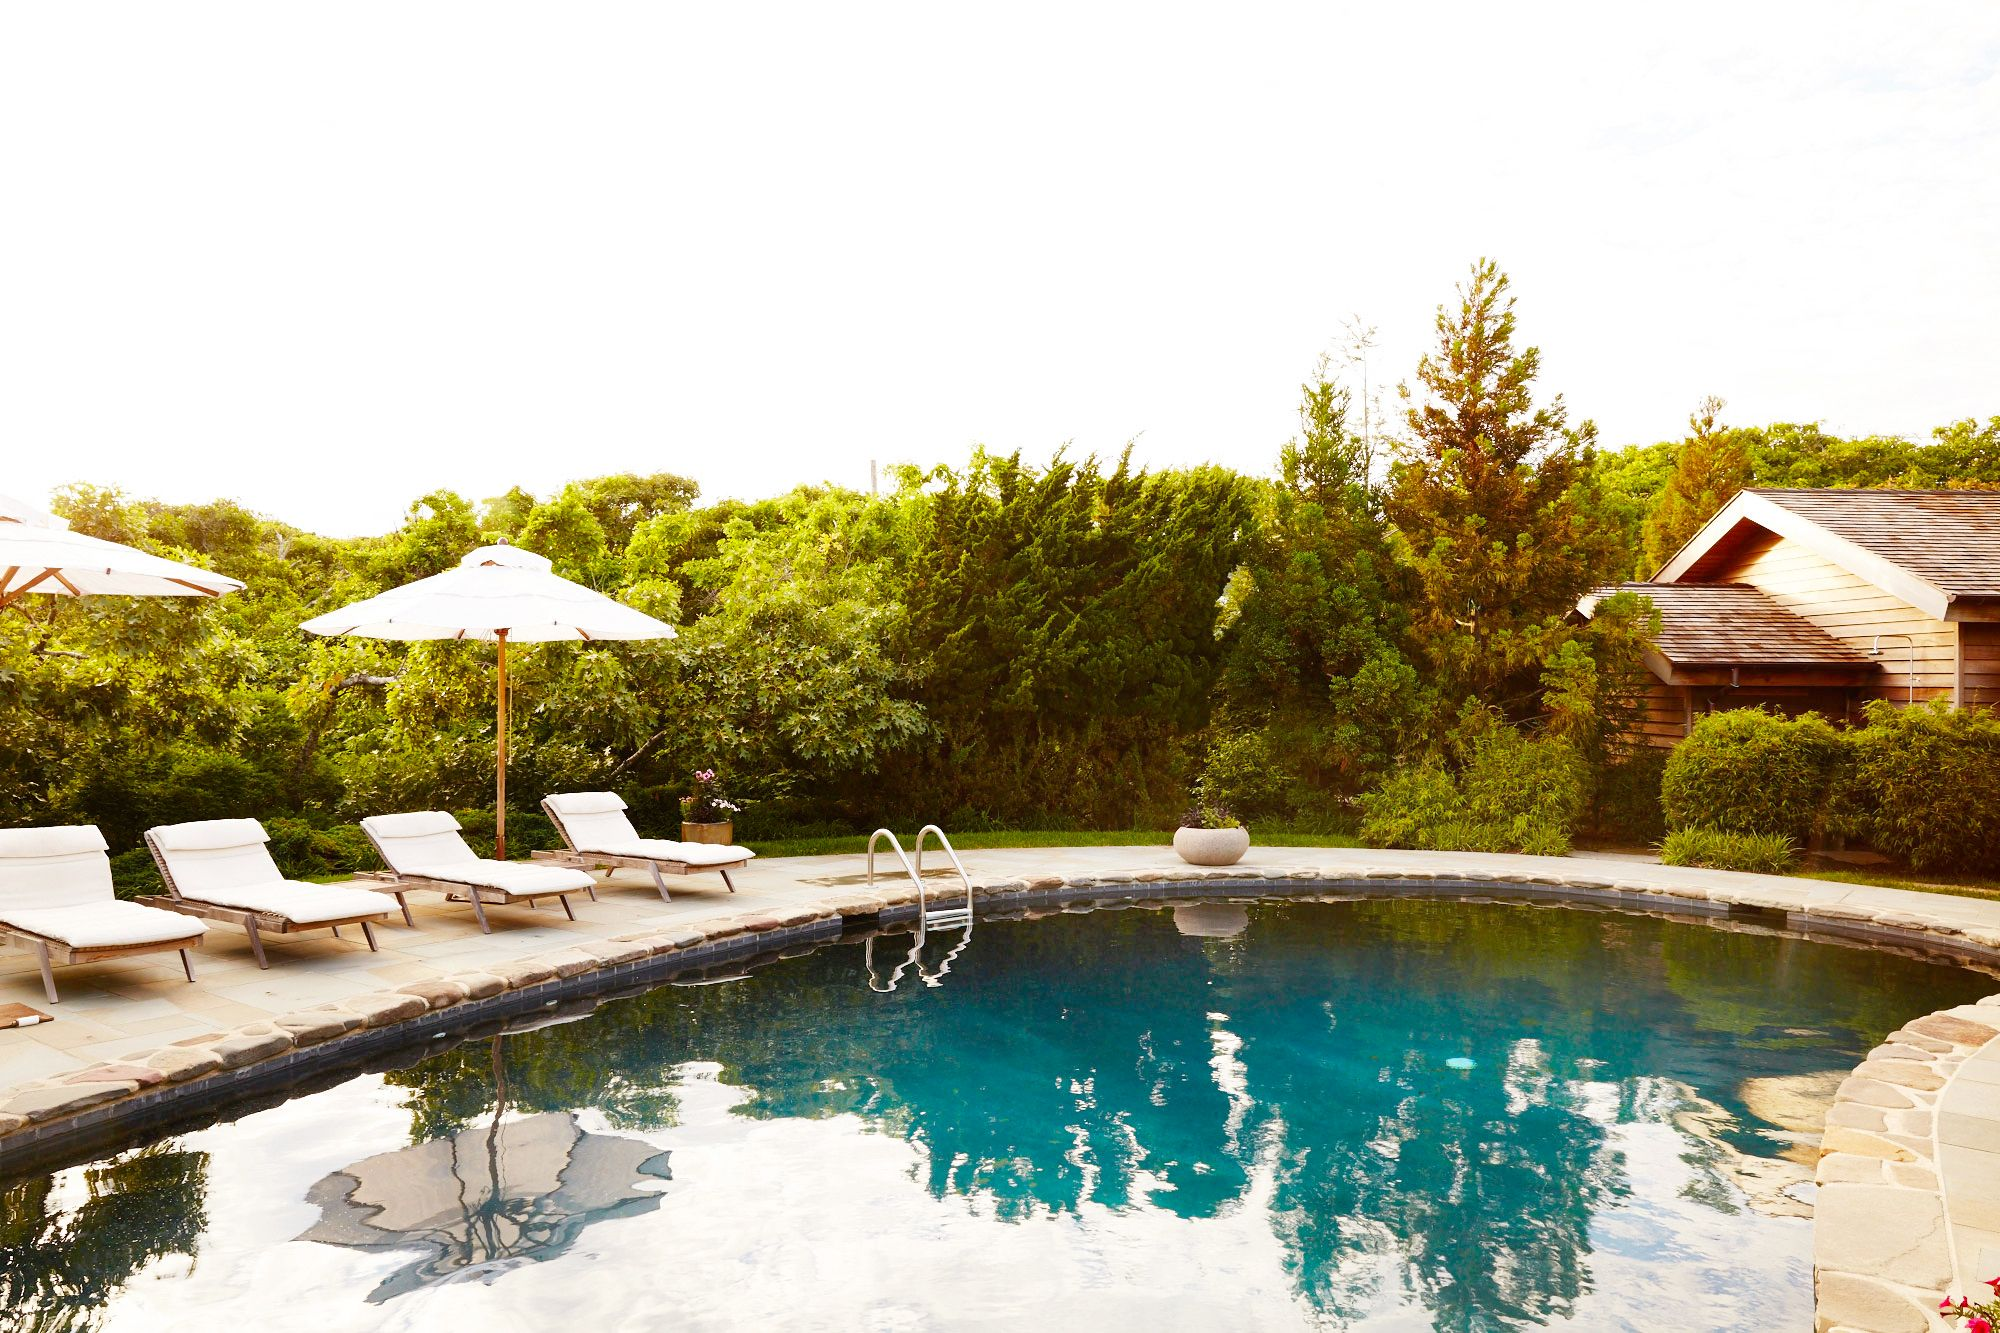 14 Pool Deck Ideas For Summer Lounging Pool Deck Designs